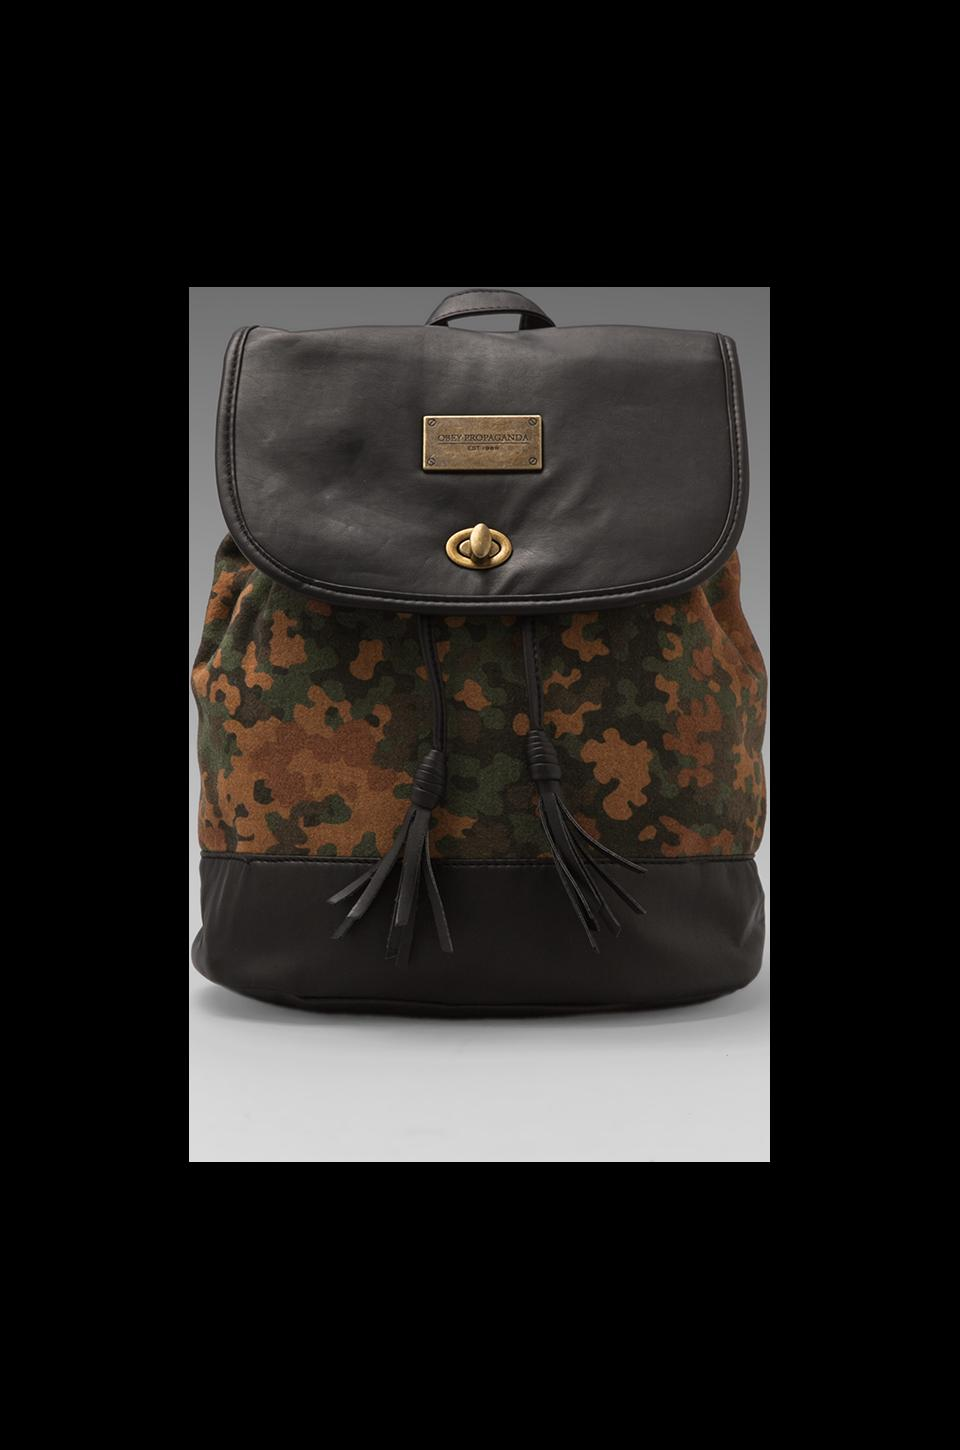 Obey Berlin Rucksack Convertible Backpack/Purse in Multi